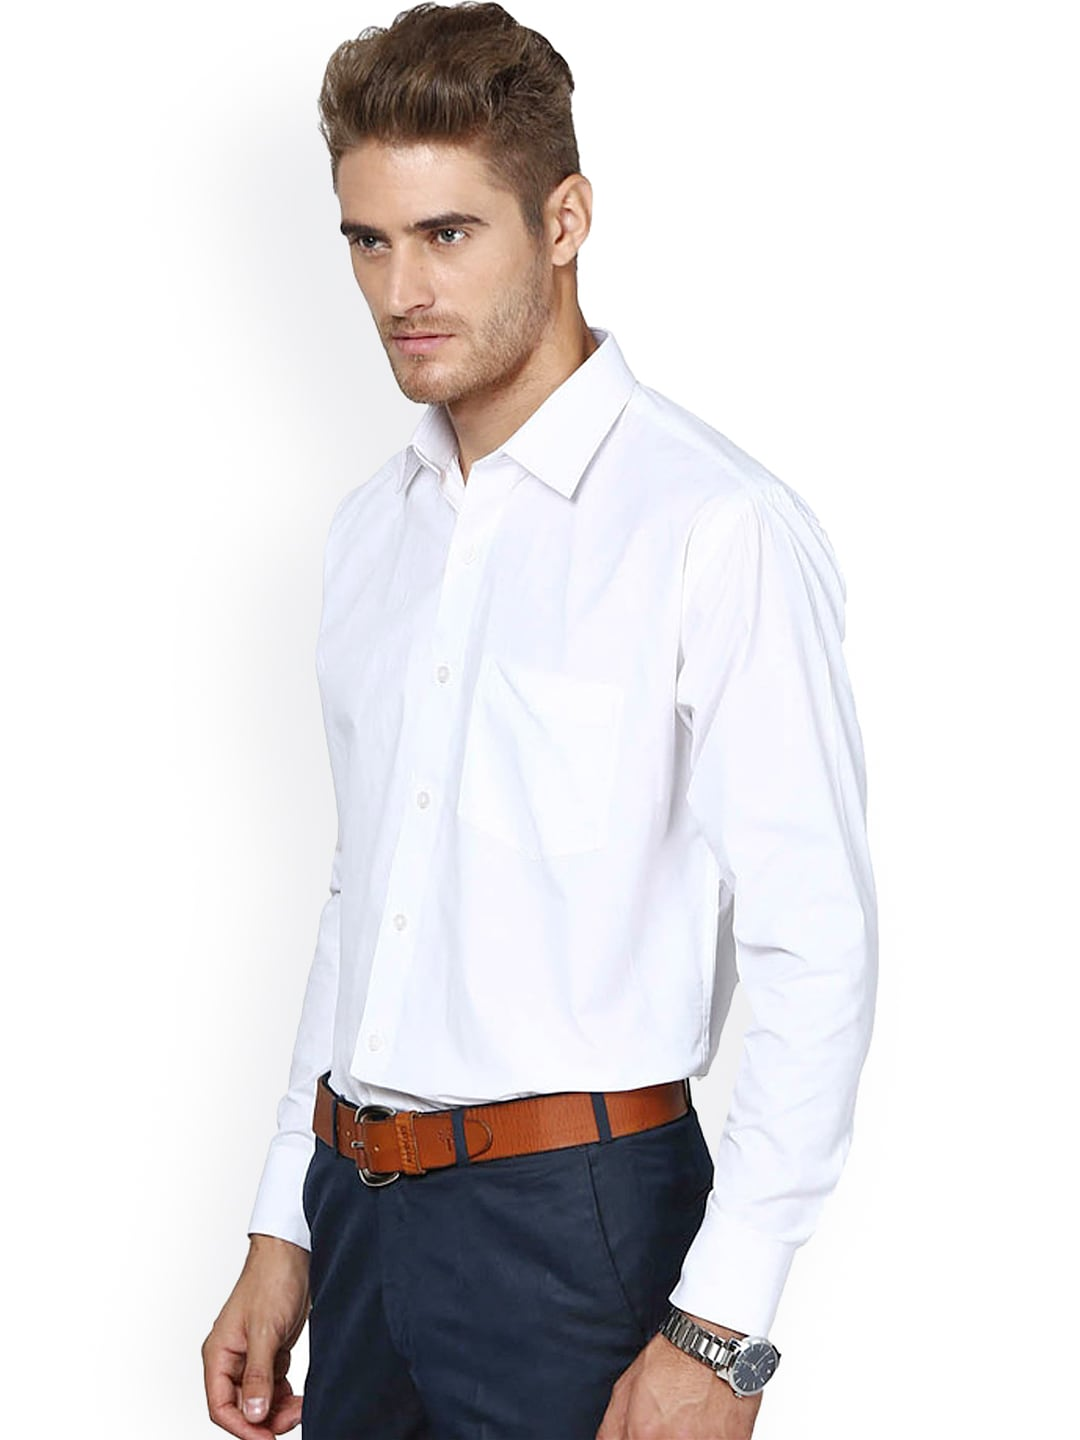 Male dress shirt images galleries for Mens formal white shirts